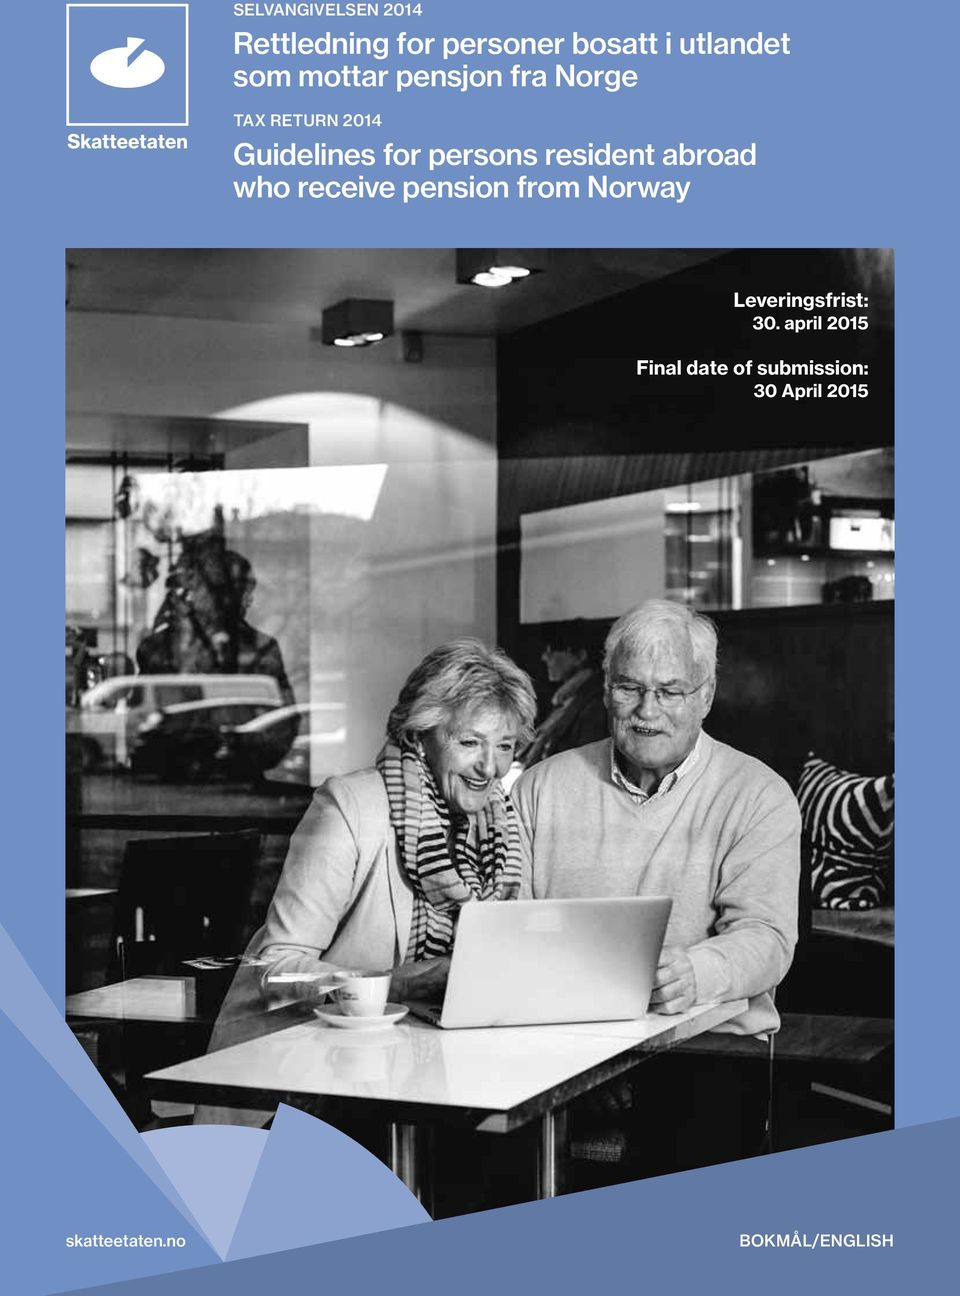 resident abroad who receive pension from Norway Leveringsfrist: 30.